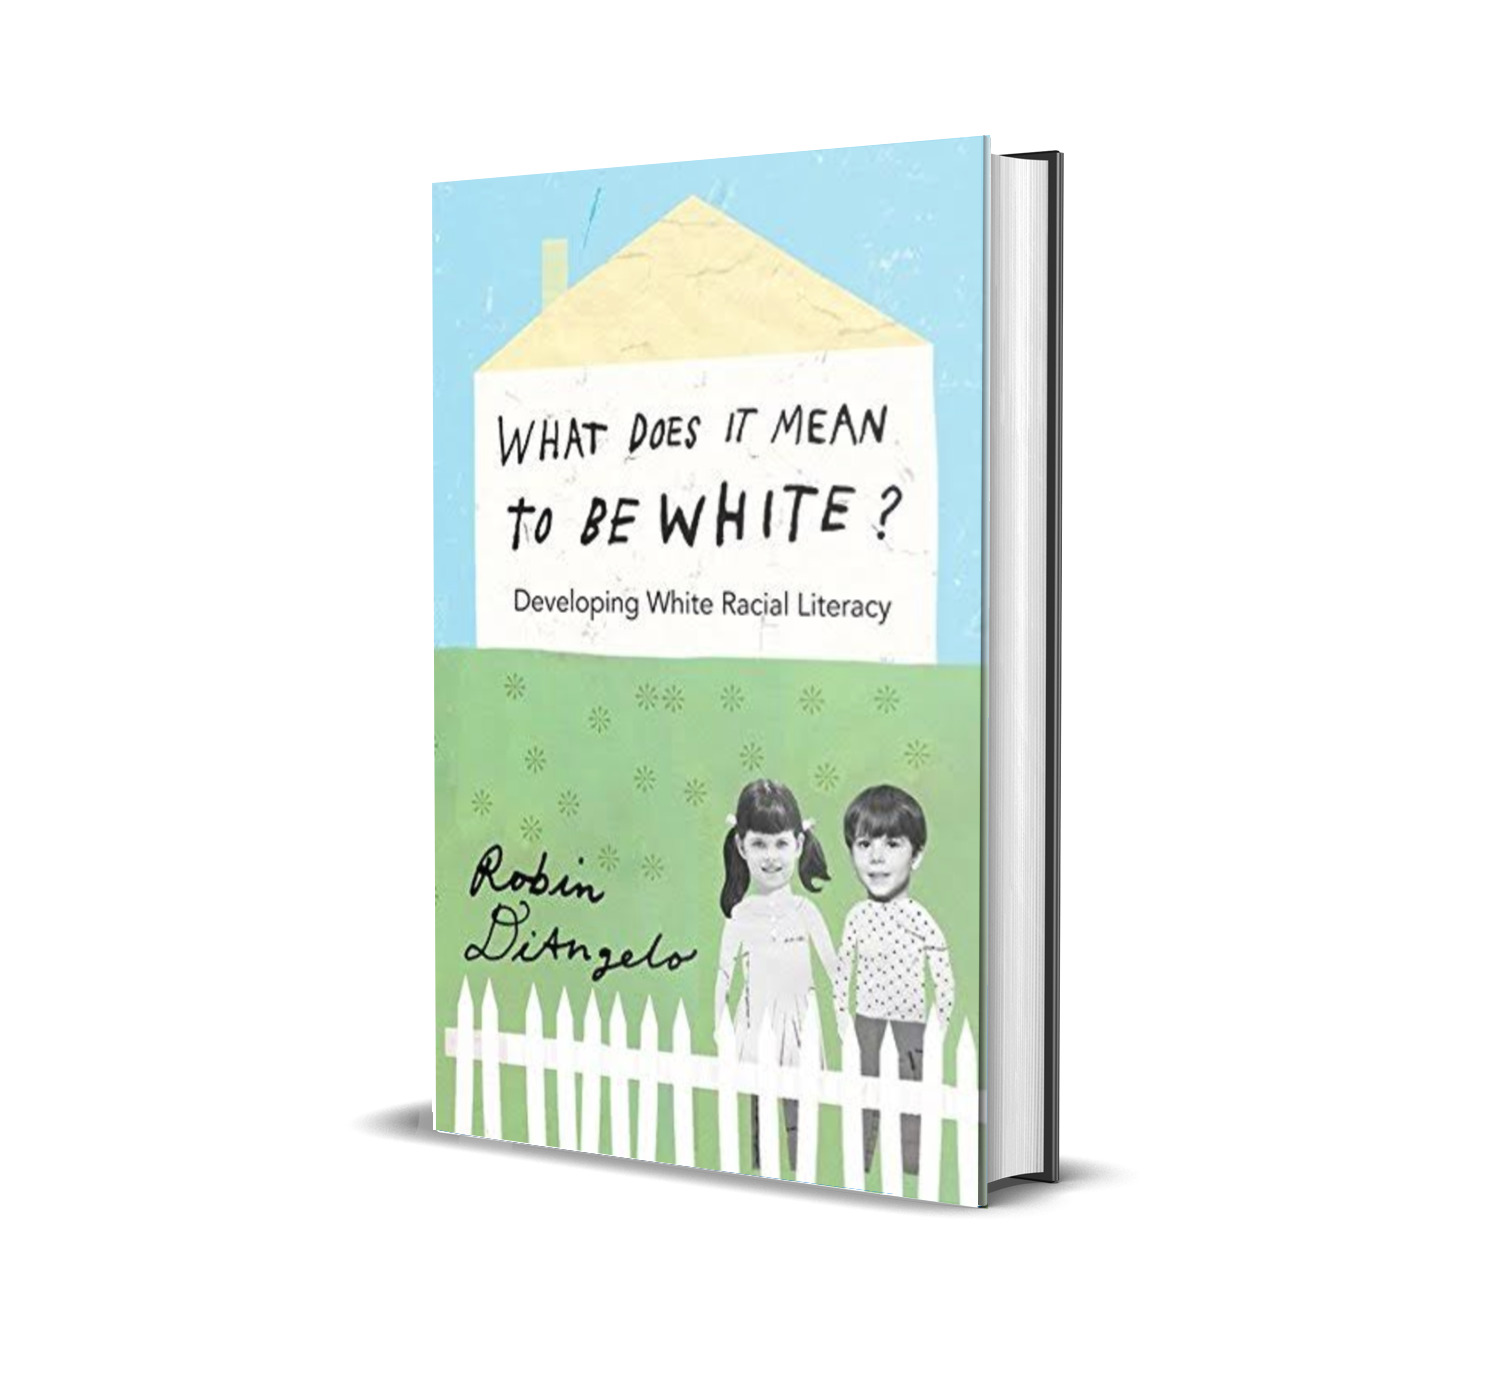 What does it mean to be white- Robin DiAngelo